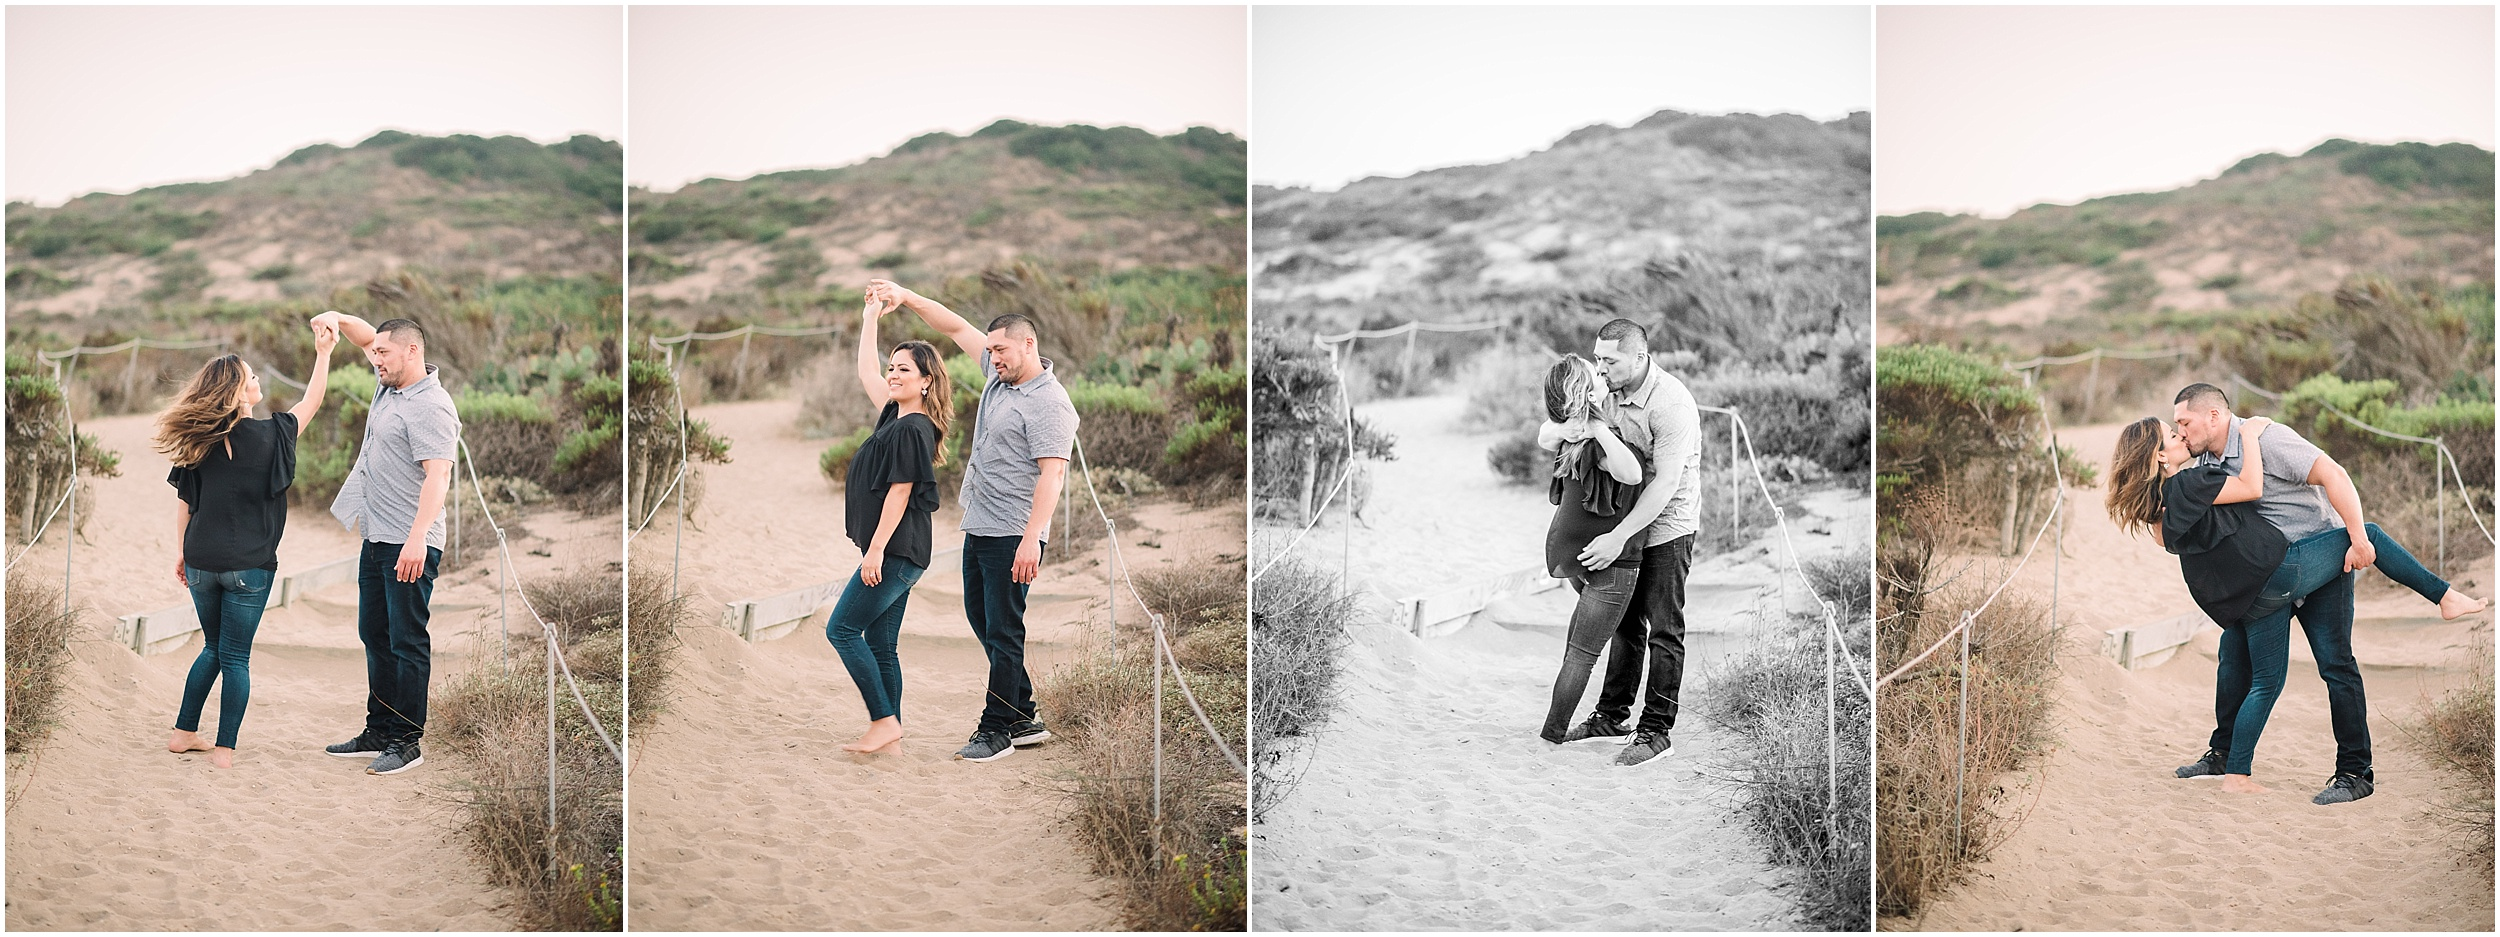 Engagement-Session-in-Malibu-California-Valeria-Gonzalez-Photography-Wedding-and-Portrait-Photographer-Richmond-Virginia-Ventura-California_0029.jpg